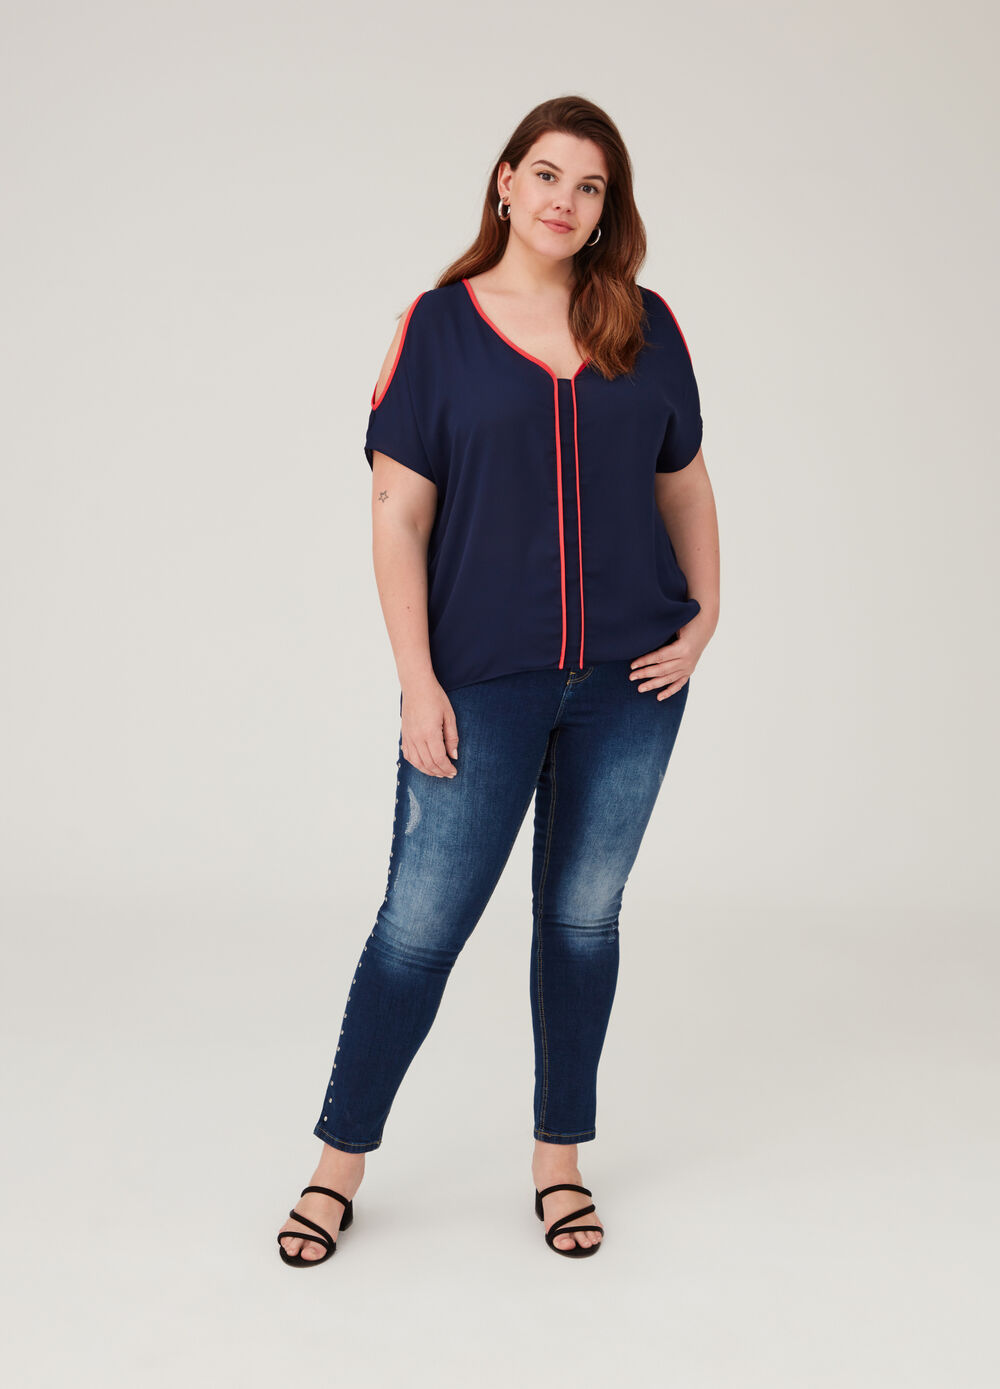 Curvy short-sleeved blouse with V neck